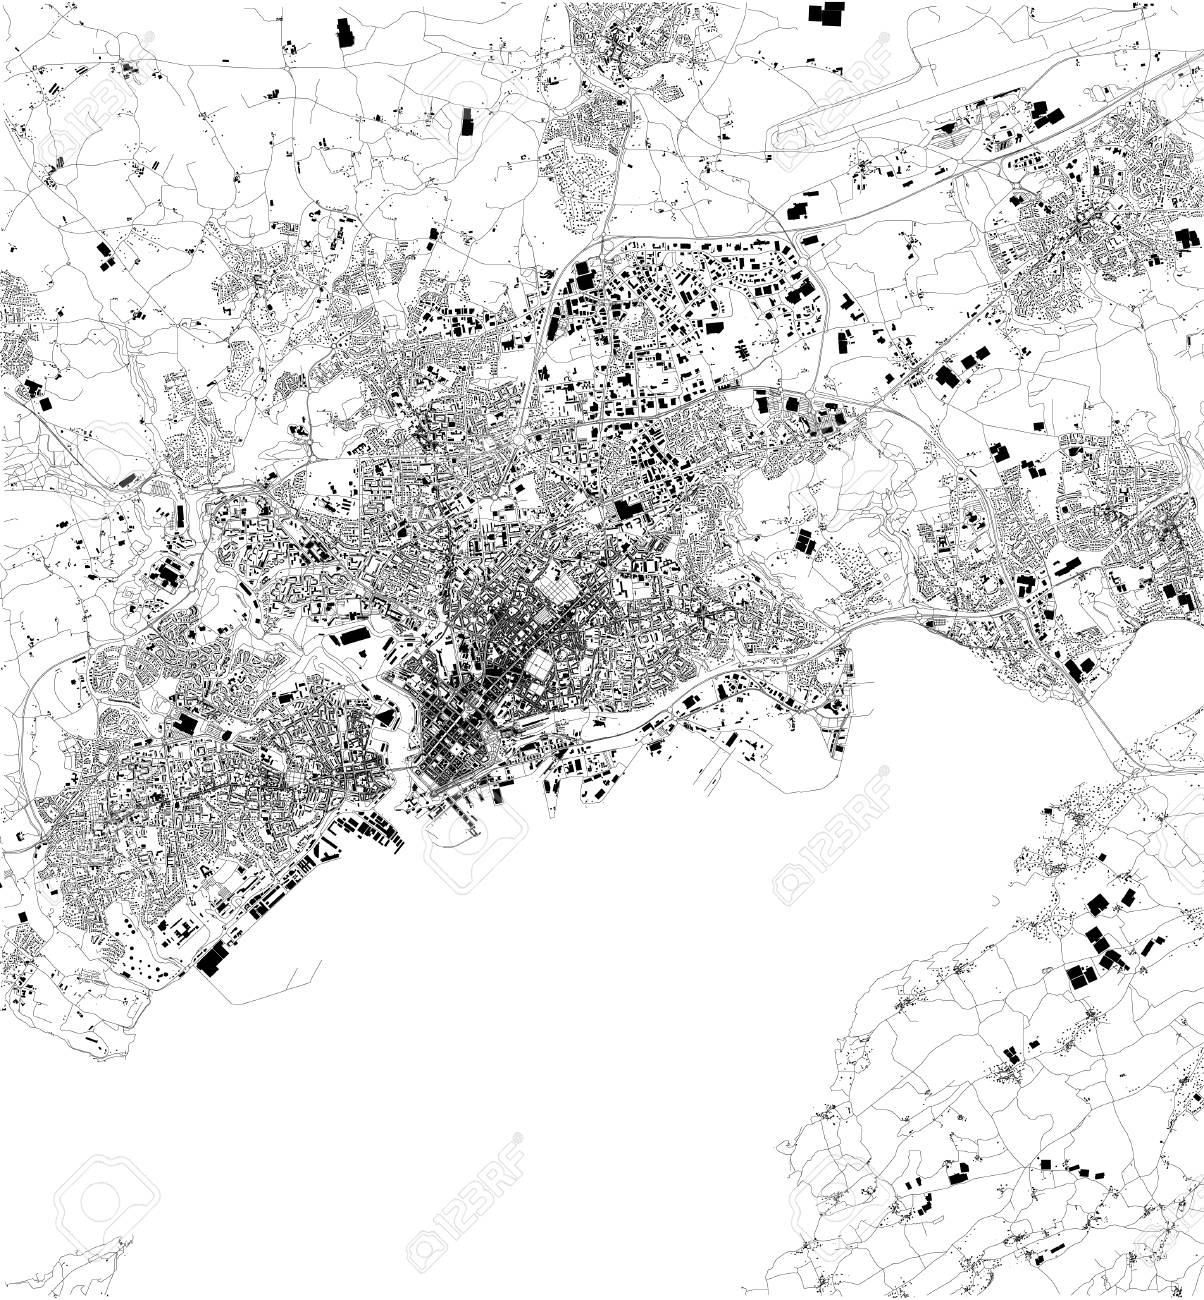 Map Of Brest France Satellite View Black And White Map Street